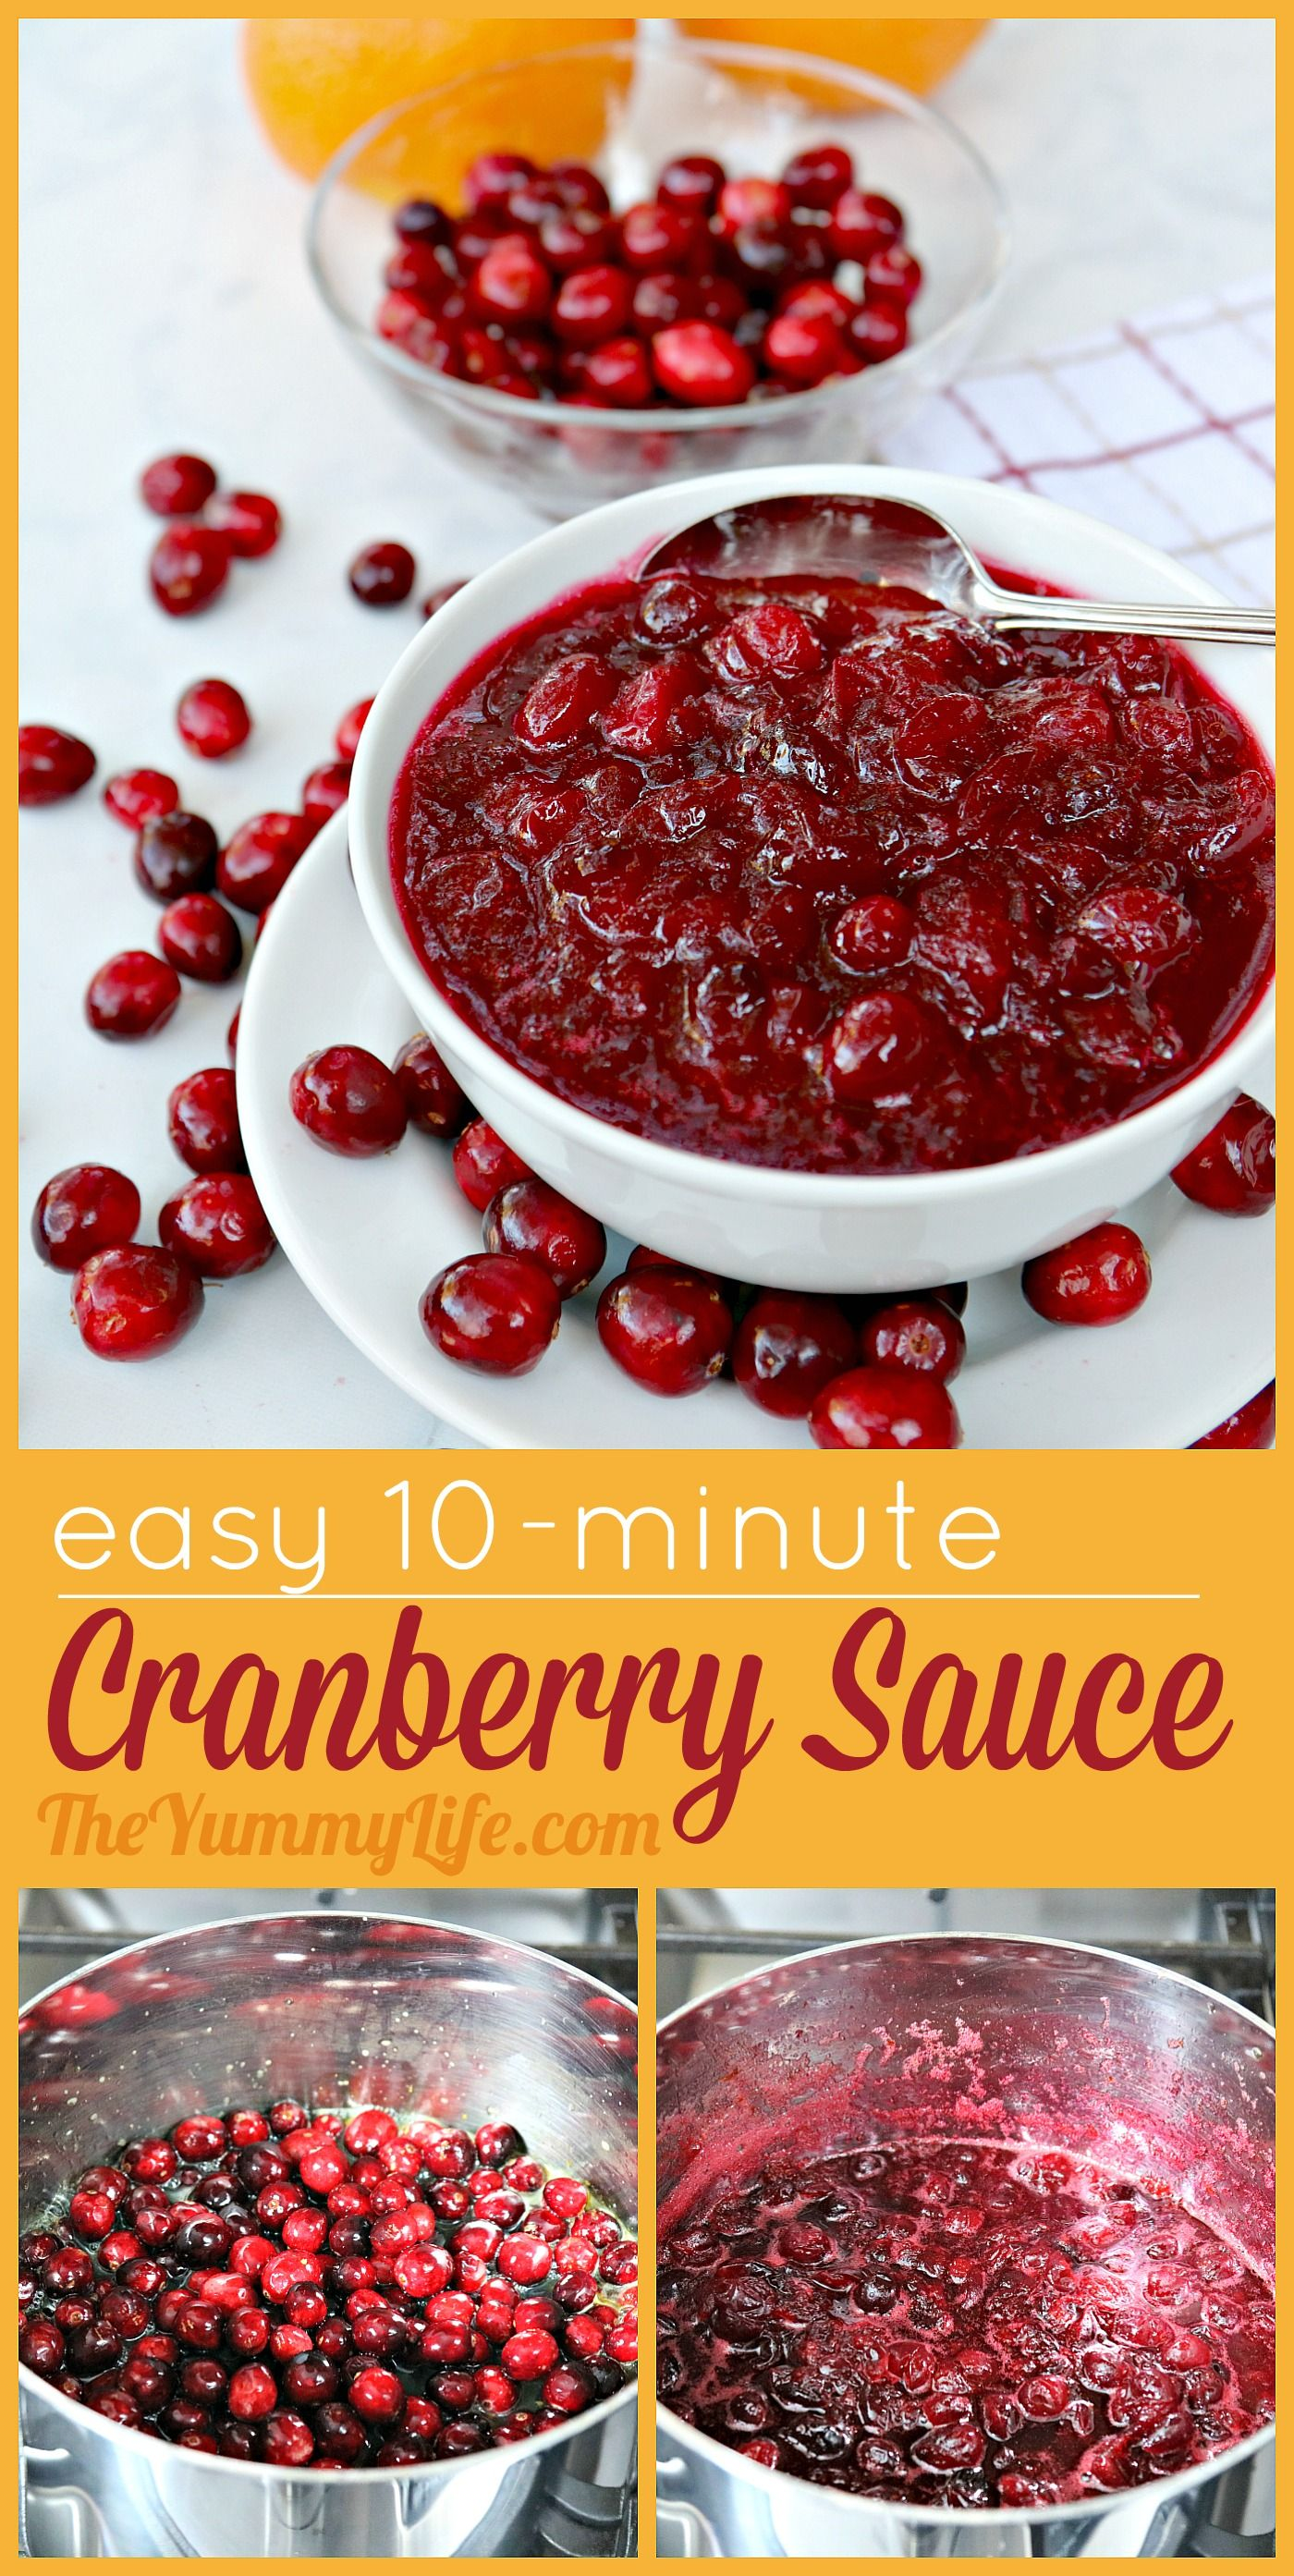 This classic recipe can be made start-to-finish in 10 minutes, so why buy the canned stuff? Leave it plain, or include a few of the optional add-ins like spices, nuts, or herbs. It's easy to customize this sauce for your individual preferences. It can be made ahead and refrigerated or frozen. A must on Christmas and Thanksgiving tables.  #CranberrySauce #Thanksgiving #Christmas #Easy #TheYummyLife